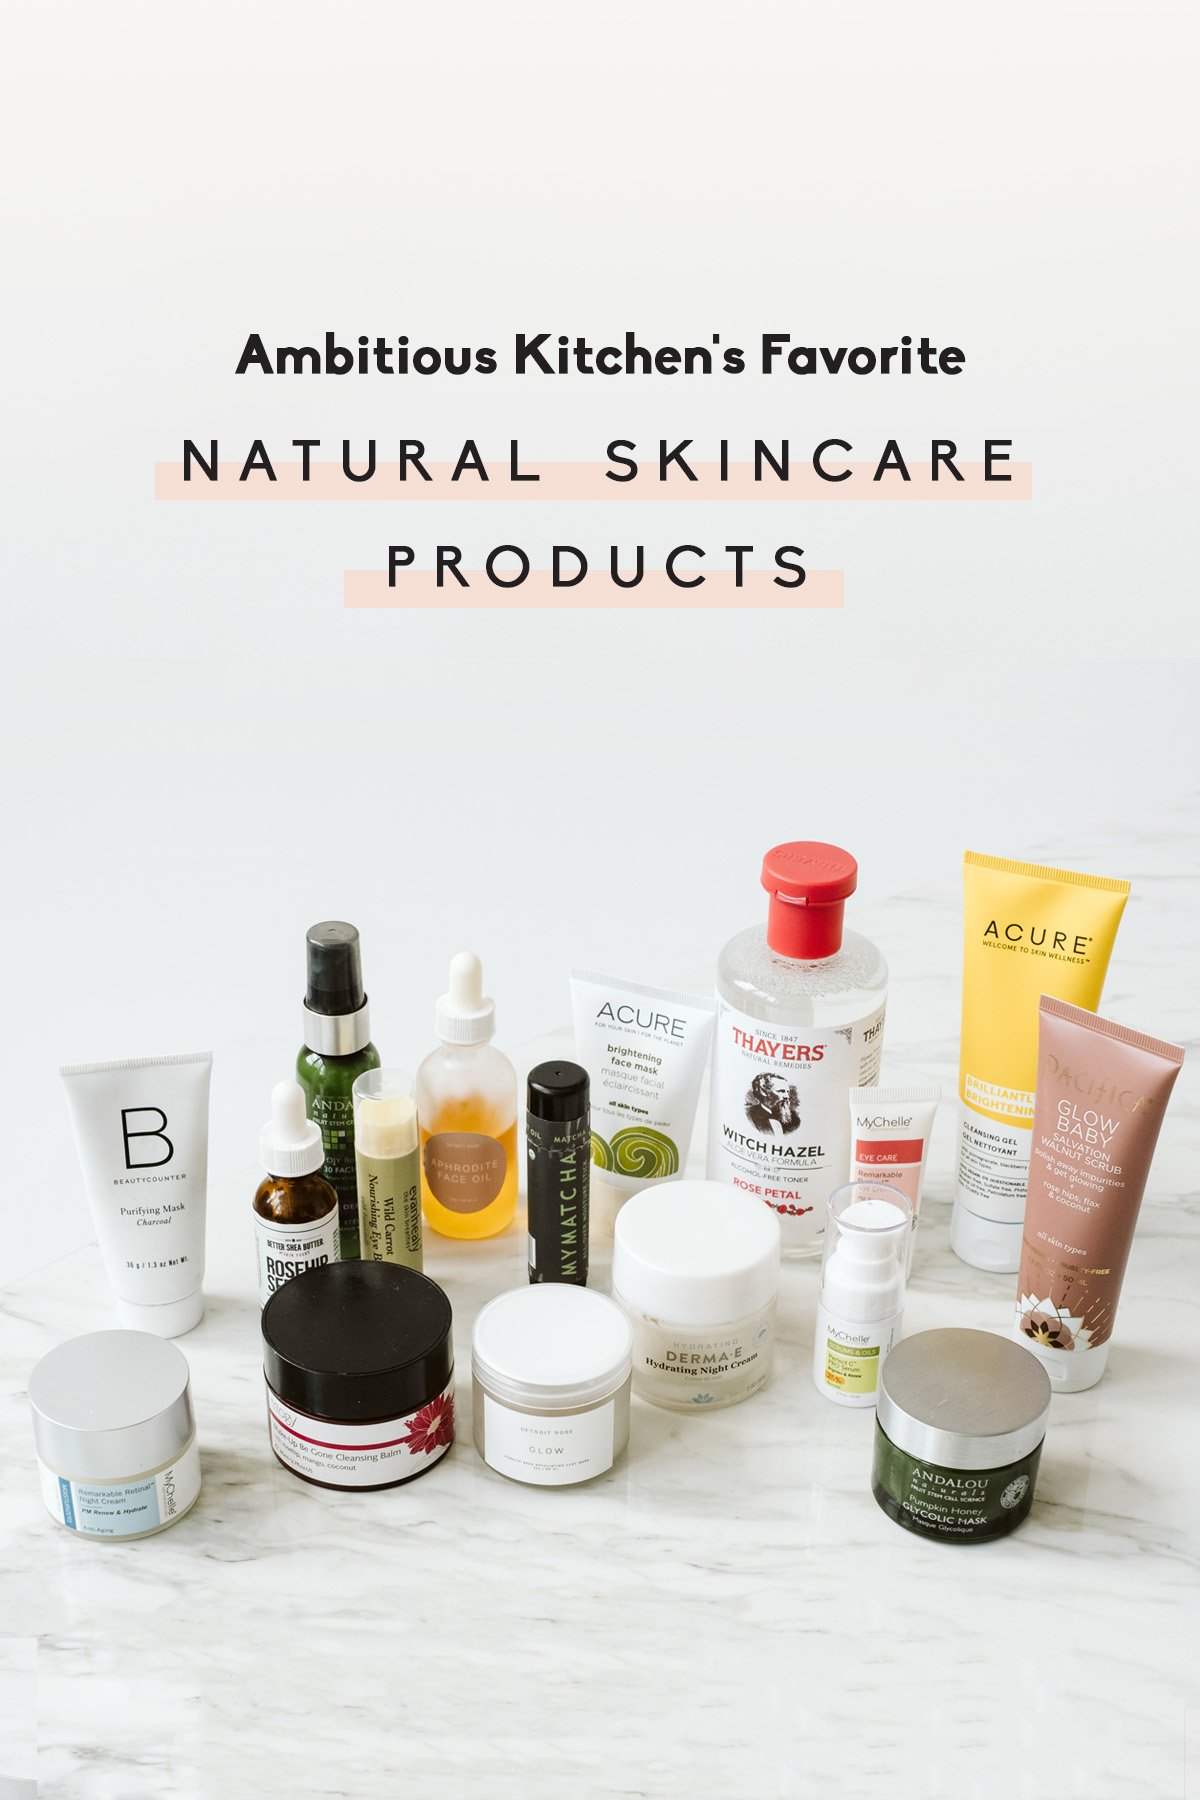 Sharing my morning skincare routine and the natural skincare products that I love and use on a daily basis! These products are accessible, affordable and great for adding into your daily routine.